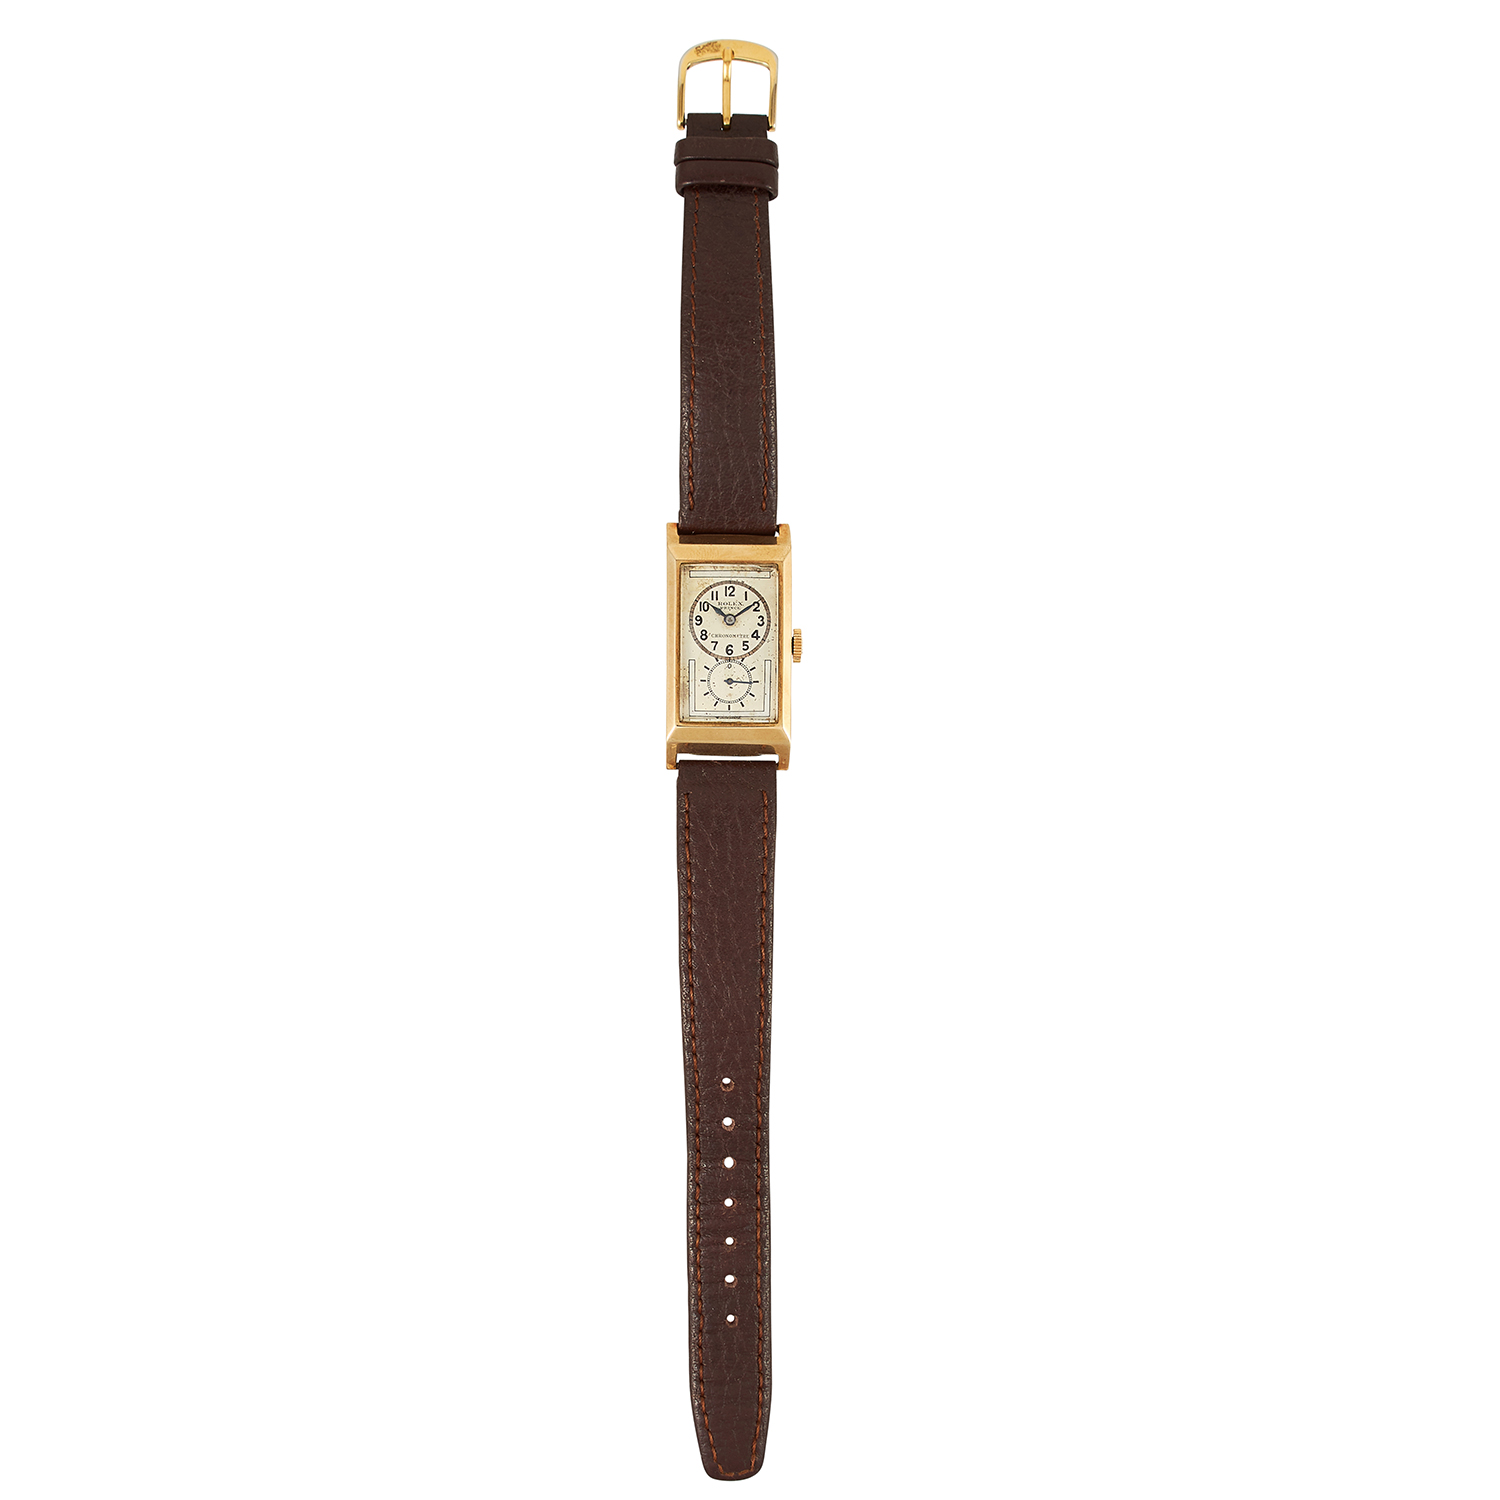 Los 106 - AN ANTIQUE ROLEX WRISTWATCH with white dial and gold border, on brown leather strap, signed Rolex,